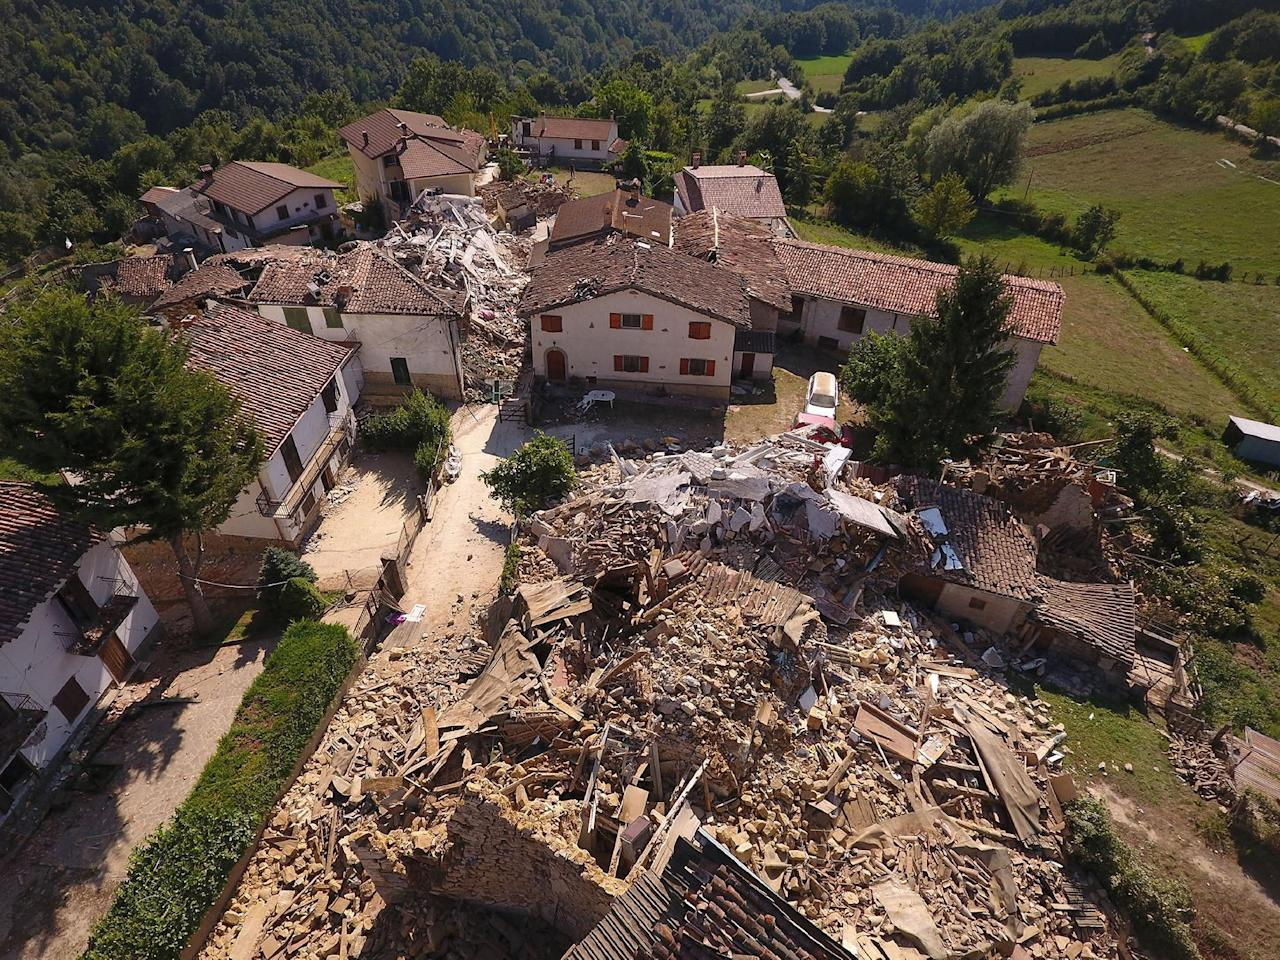 A drone photo shows the damages following an earthquake in Casale, central Italy, August 26, 2016.  REUTERS/Stefano De Nicolo   ATTENTION EDITORS - FOR EDITORIAL USE ONLY. NO RESALES. NO ARCHIVES. ITALY OUT. NO COMMERCIAL OR EDITORIAL SALES IN ITALY.